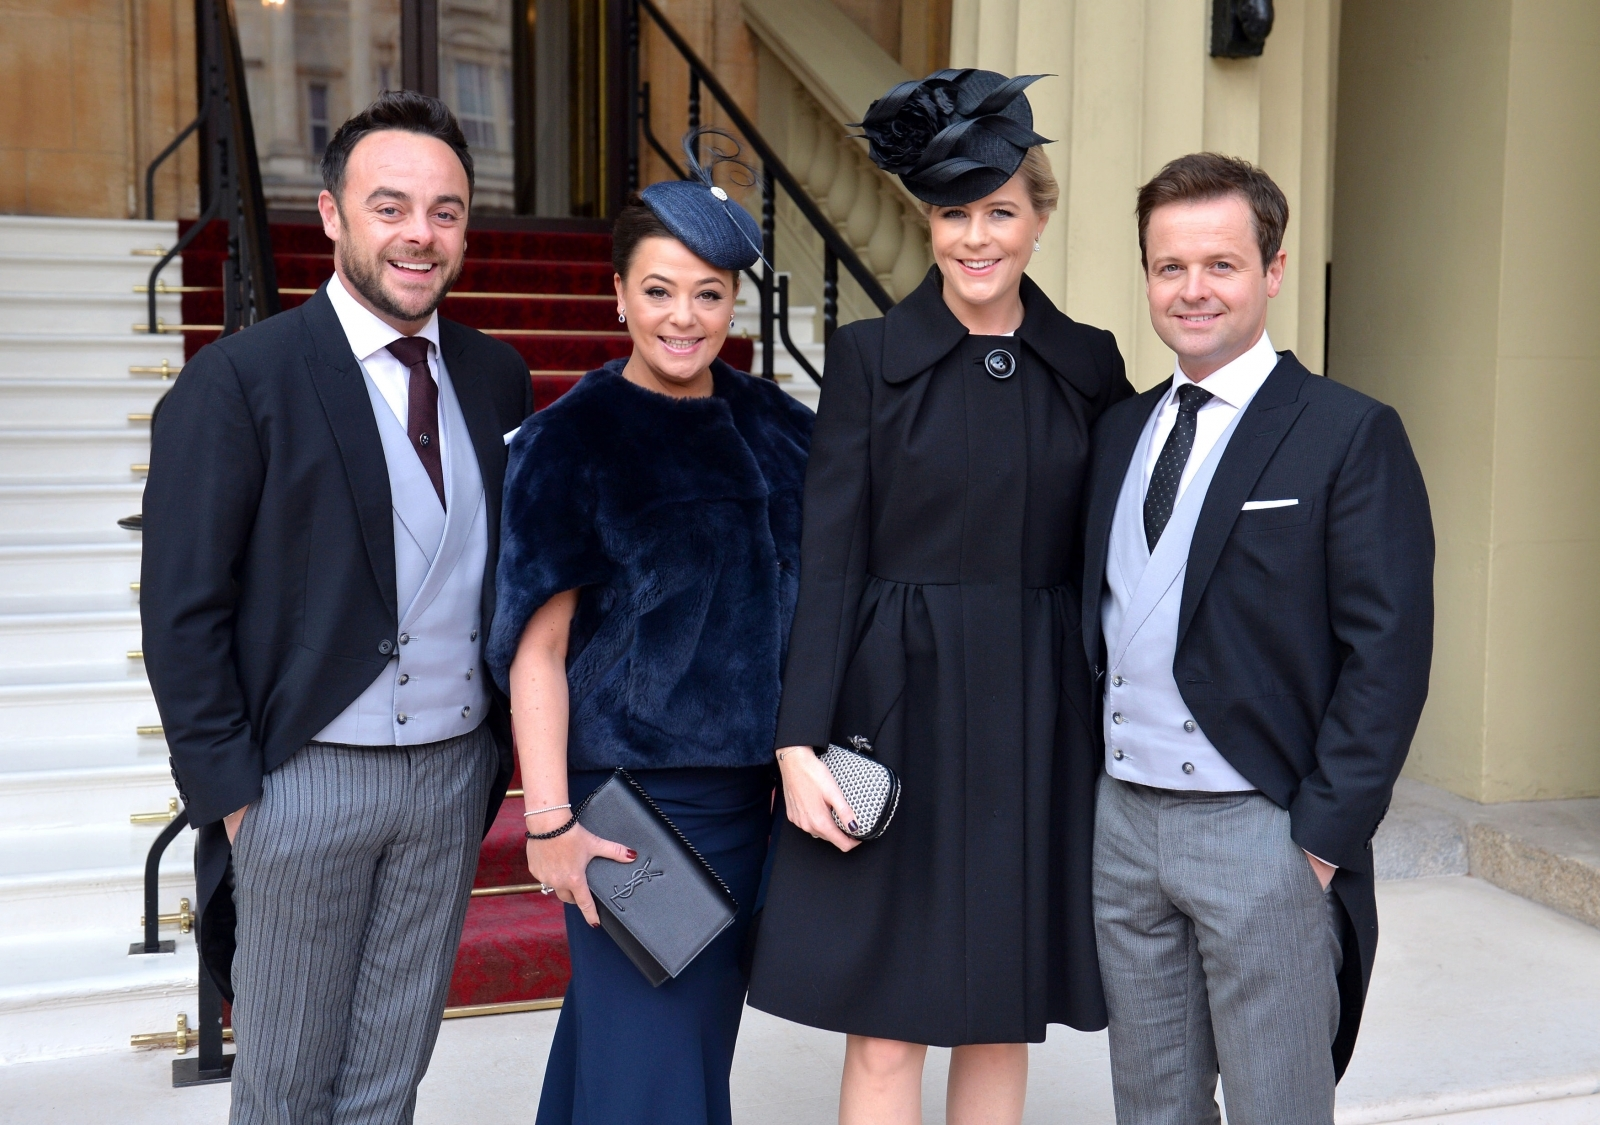 nt and Dec and their wives Lisa Armstrong and Ali Astall arrive at Buckingham Palace, where the pair will be awarded OBEs by the Prince of Wales at an Investiture ceremony on January 27, 2017in London, United Kingdom.